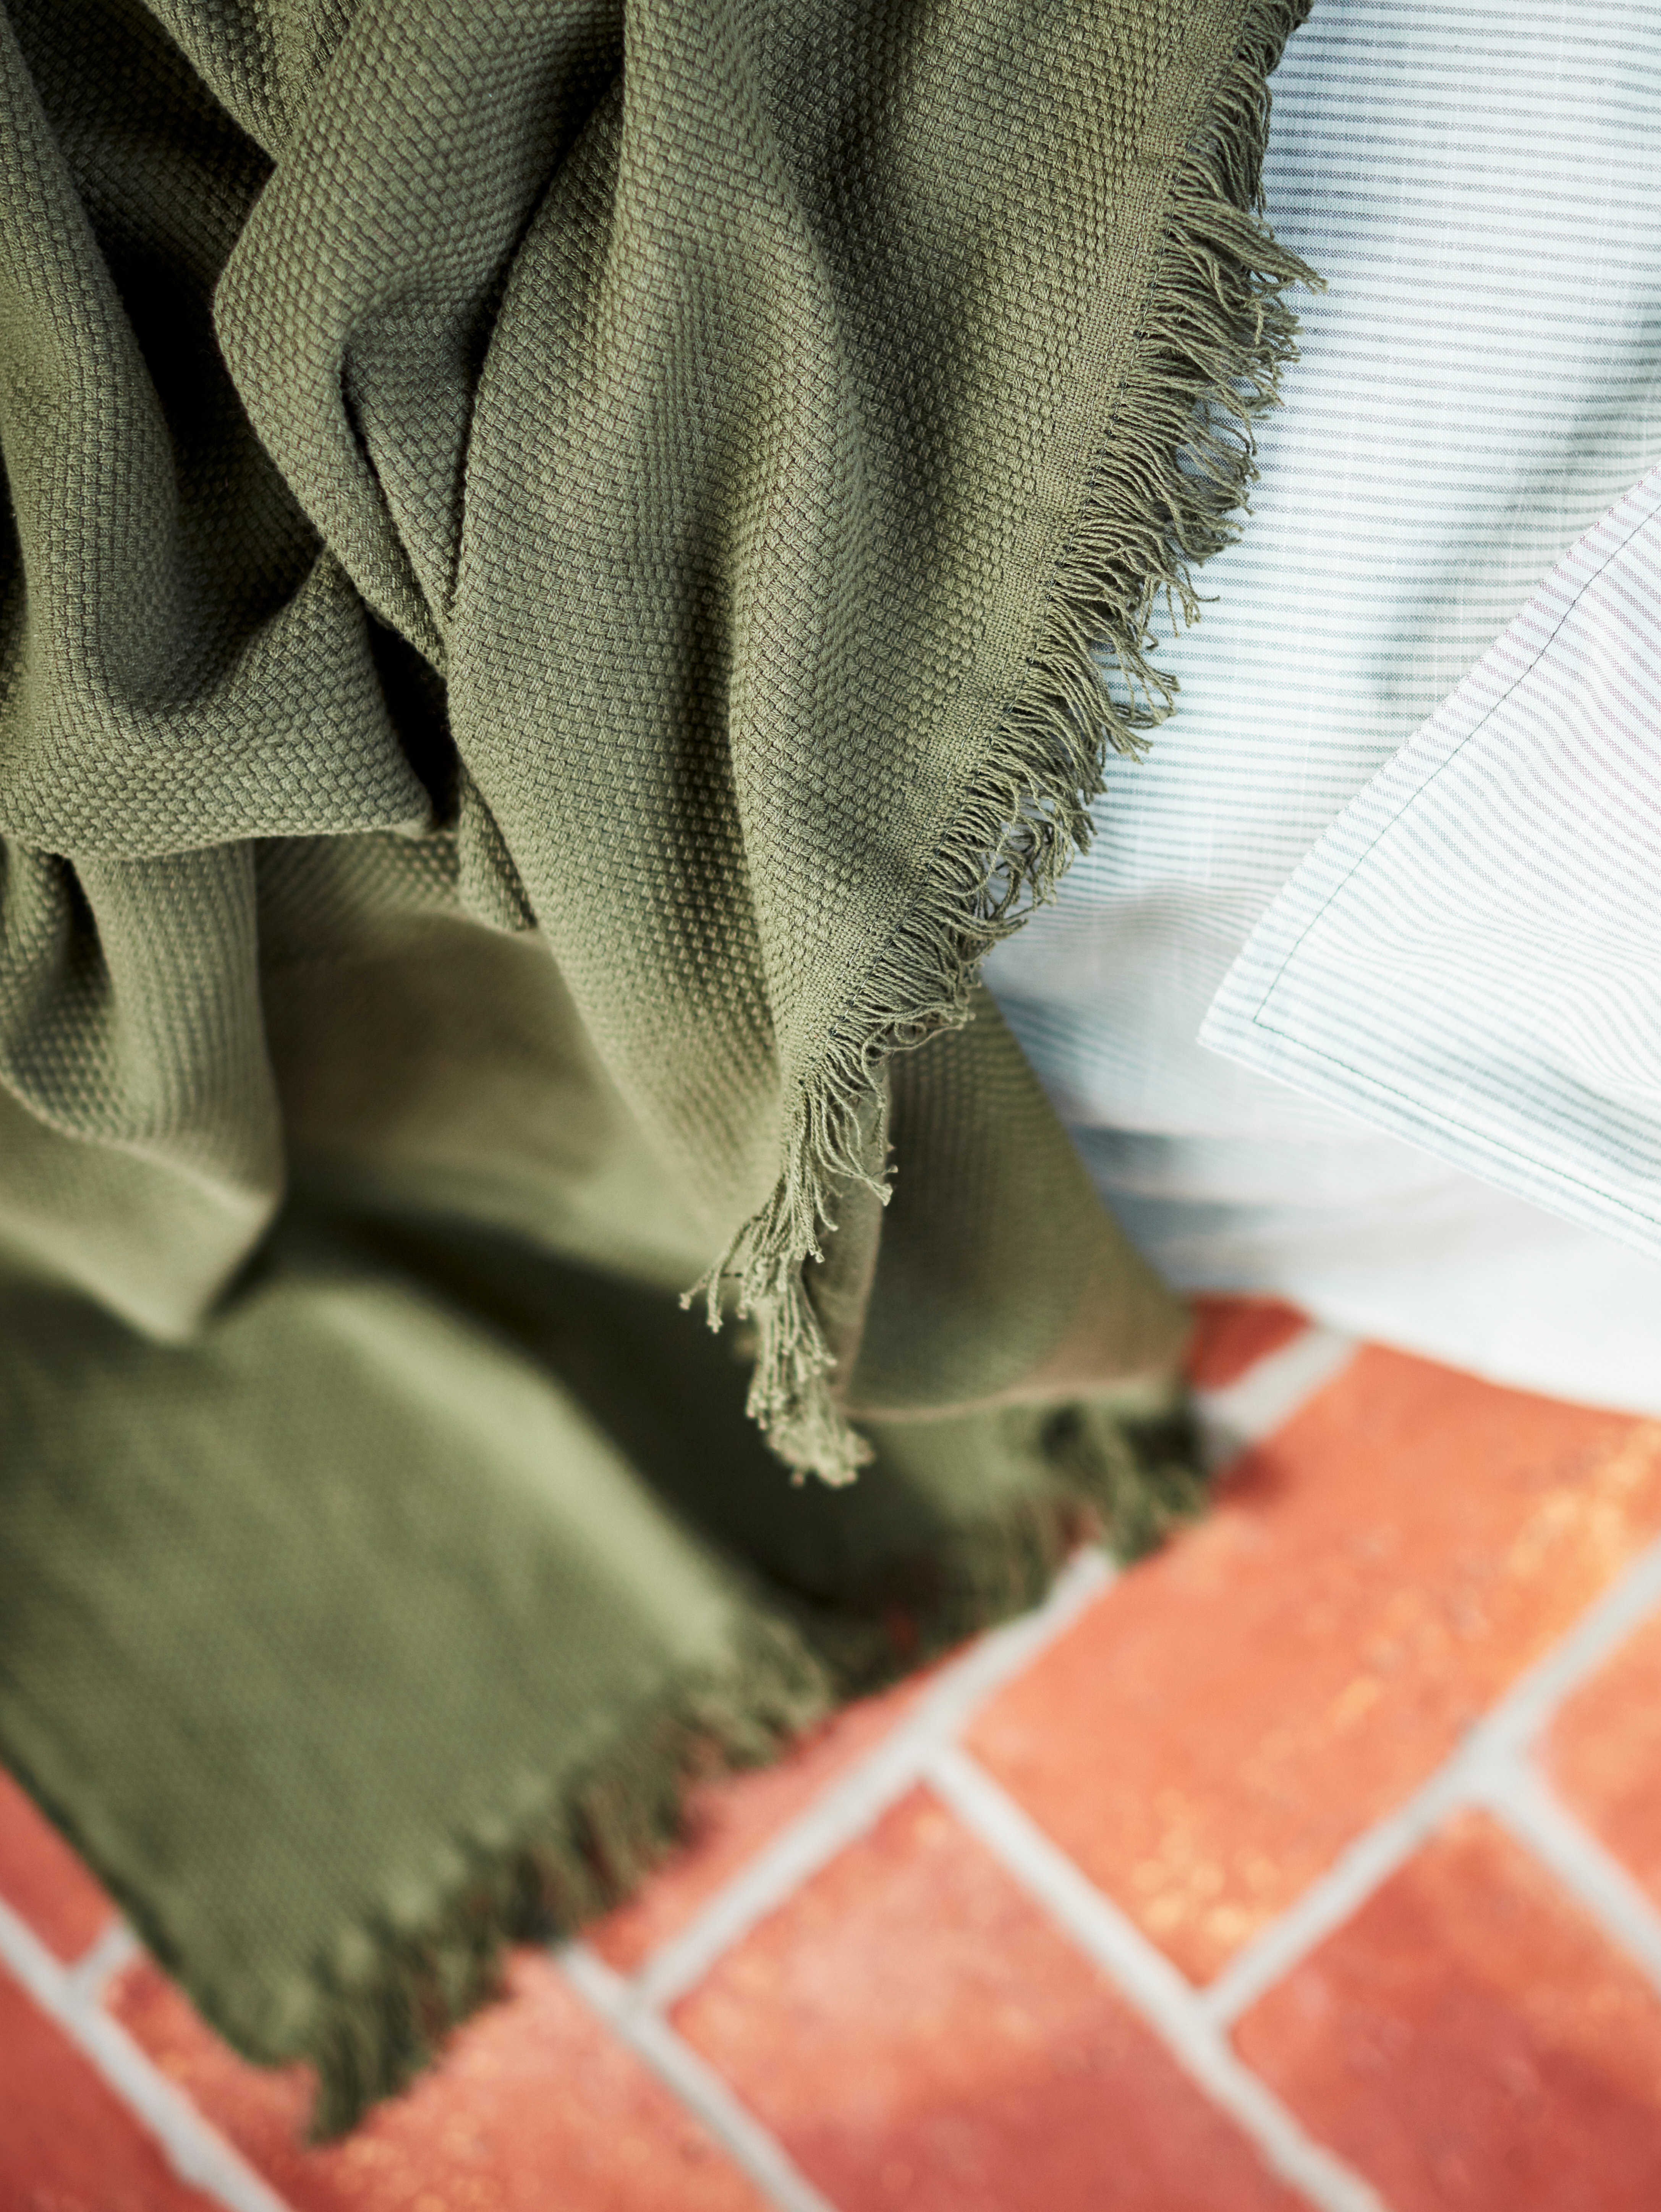 A close-up of a dark green ODDRUN throw on the edge of a bed. Its fringed edges and soft, chunky cotton weave are in focus.